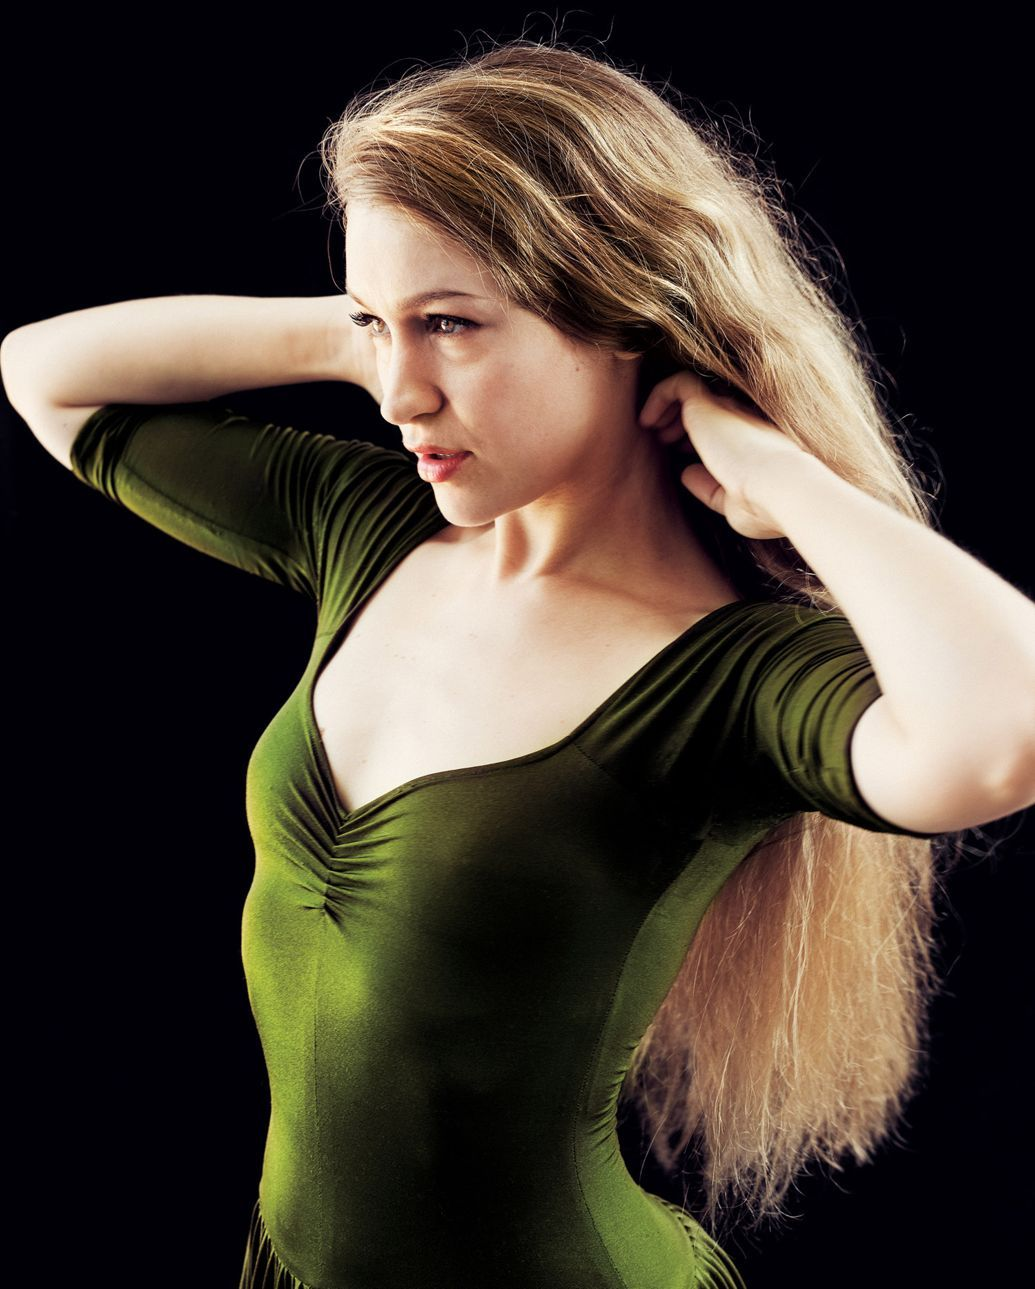 joanna newsom ysjoanna newsom peach plum pear, joanna newsom - in california, joanna newsom divers, joanna newsom ys, joanna newsom sapokanikan, joanna newsom instagram, joanna newsom peach plum pear lyrics, joanna newsom emily, joanna newsom 81, joanna newsom lyrics, joanna newsom rym, joanna newsom have one on me, joanna newsom sadie, joanna newsom the book of right-on, joanna newsom discogs, joanna newsom milk eyed mender, joanna newsom metacritic, joanna newsom make hay, joanna newsom cosmia, joanna newsom concerts